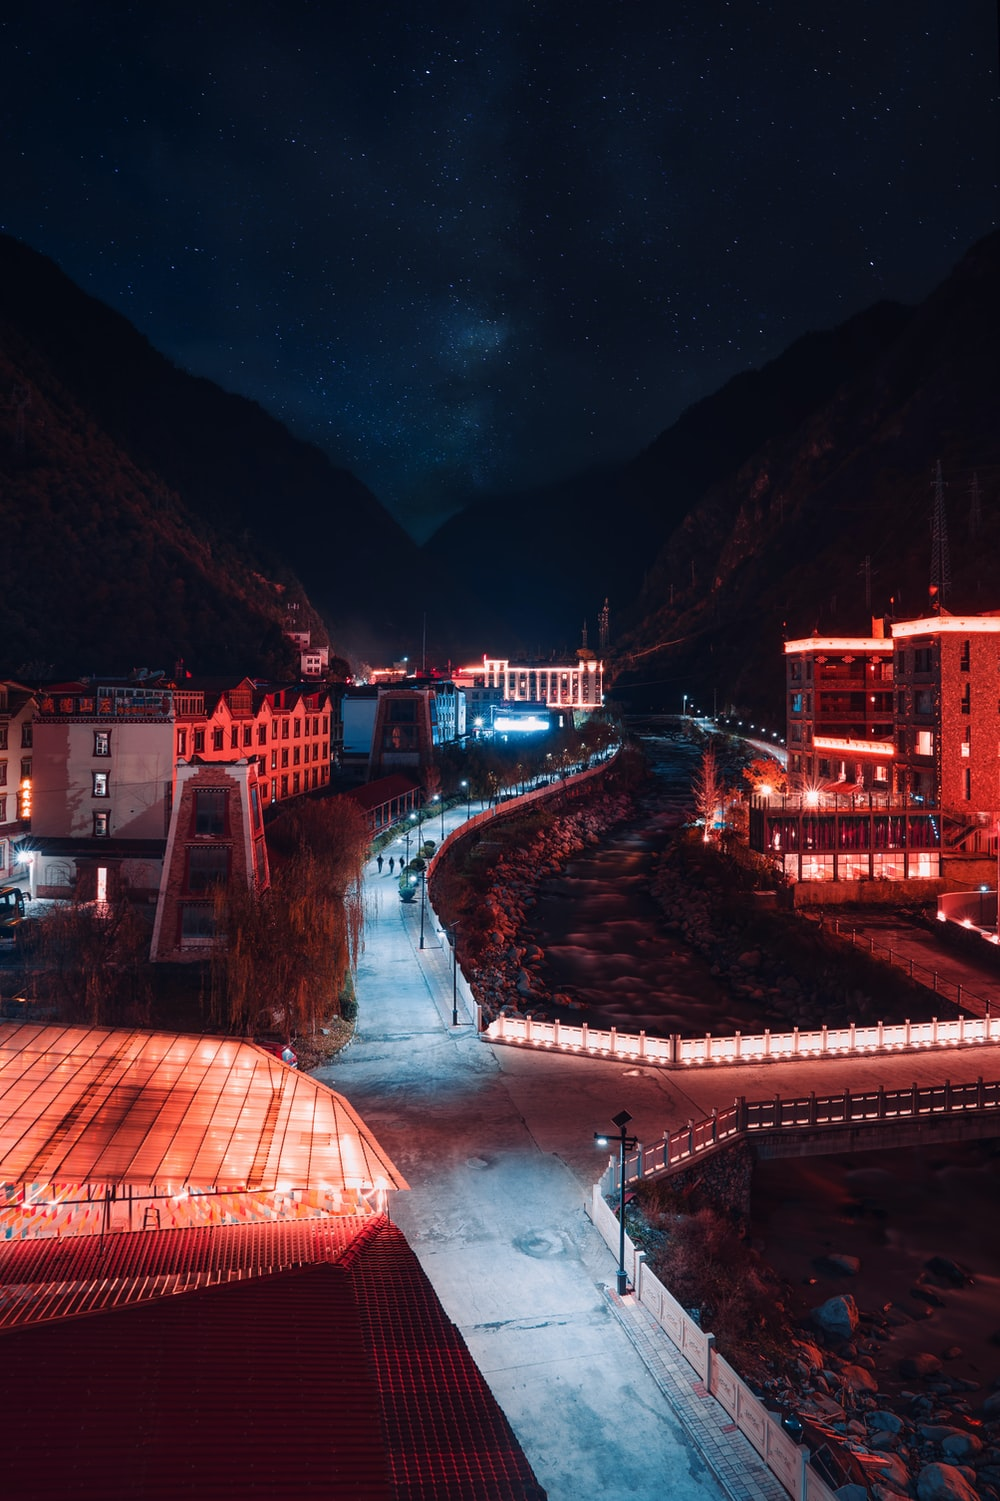 red-lighted buildings